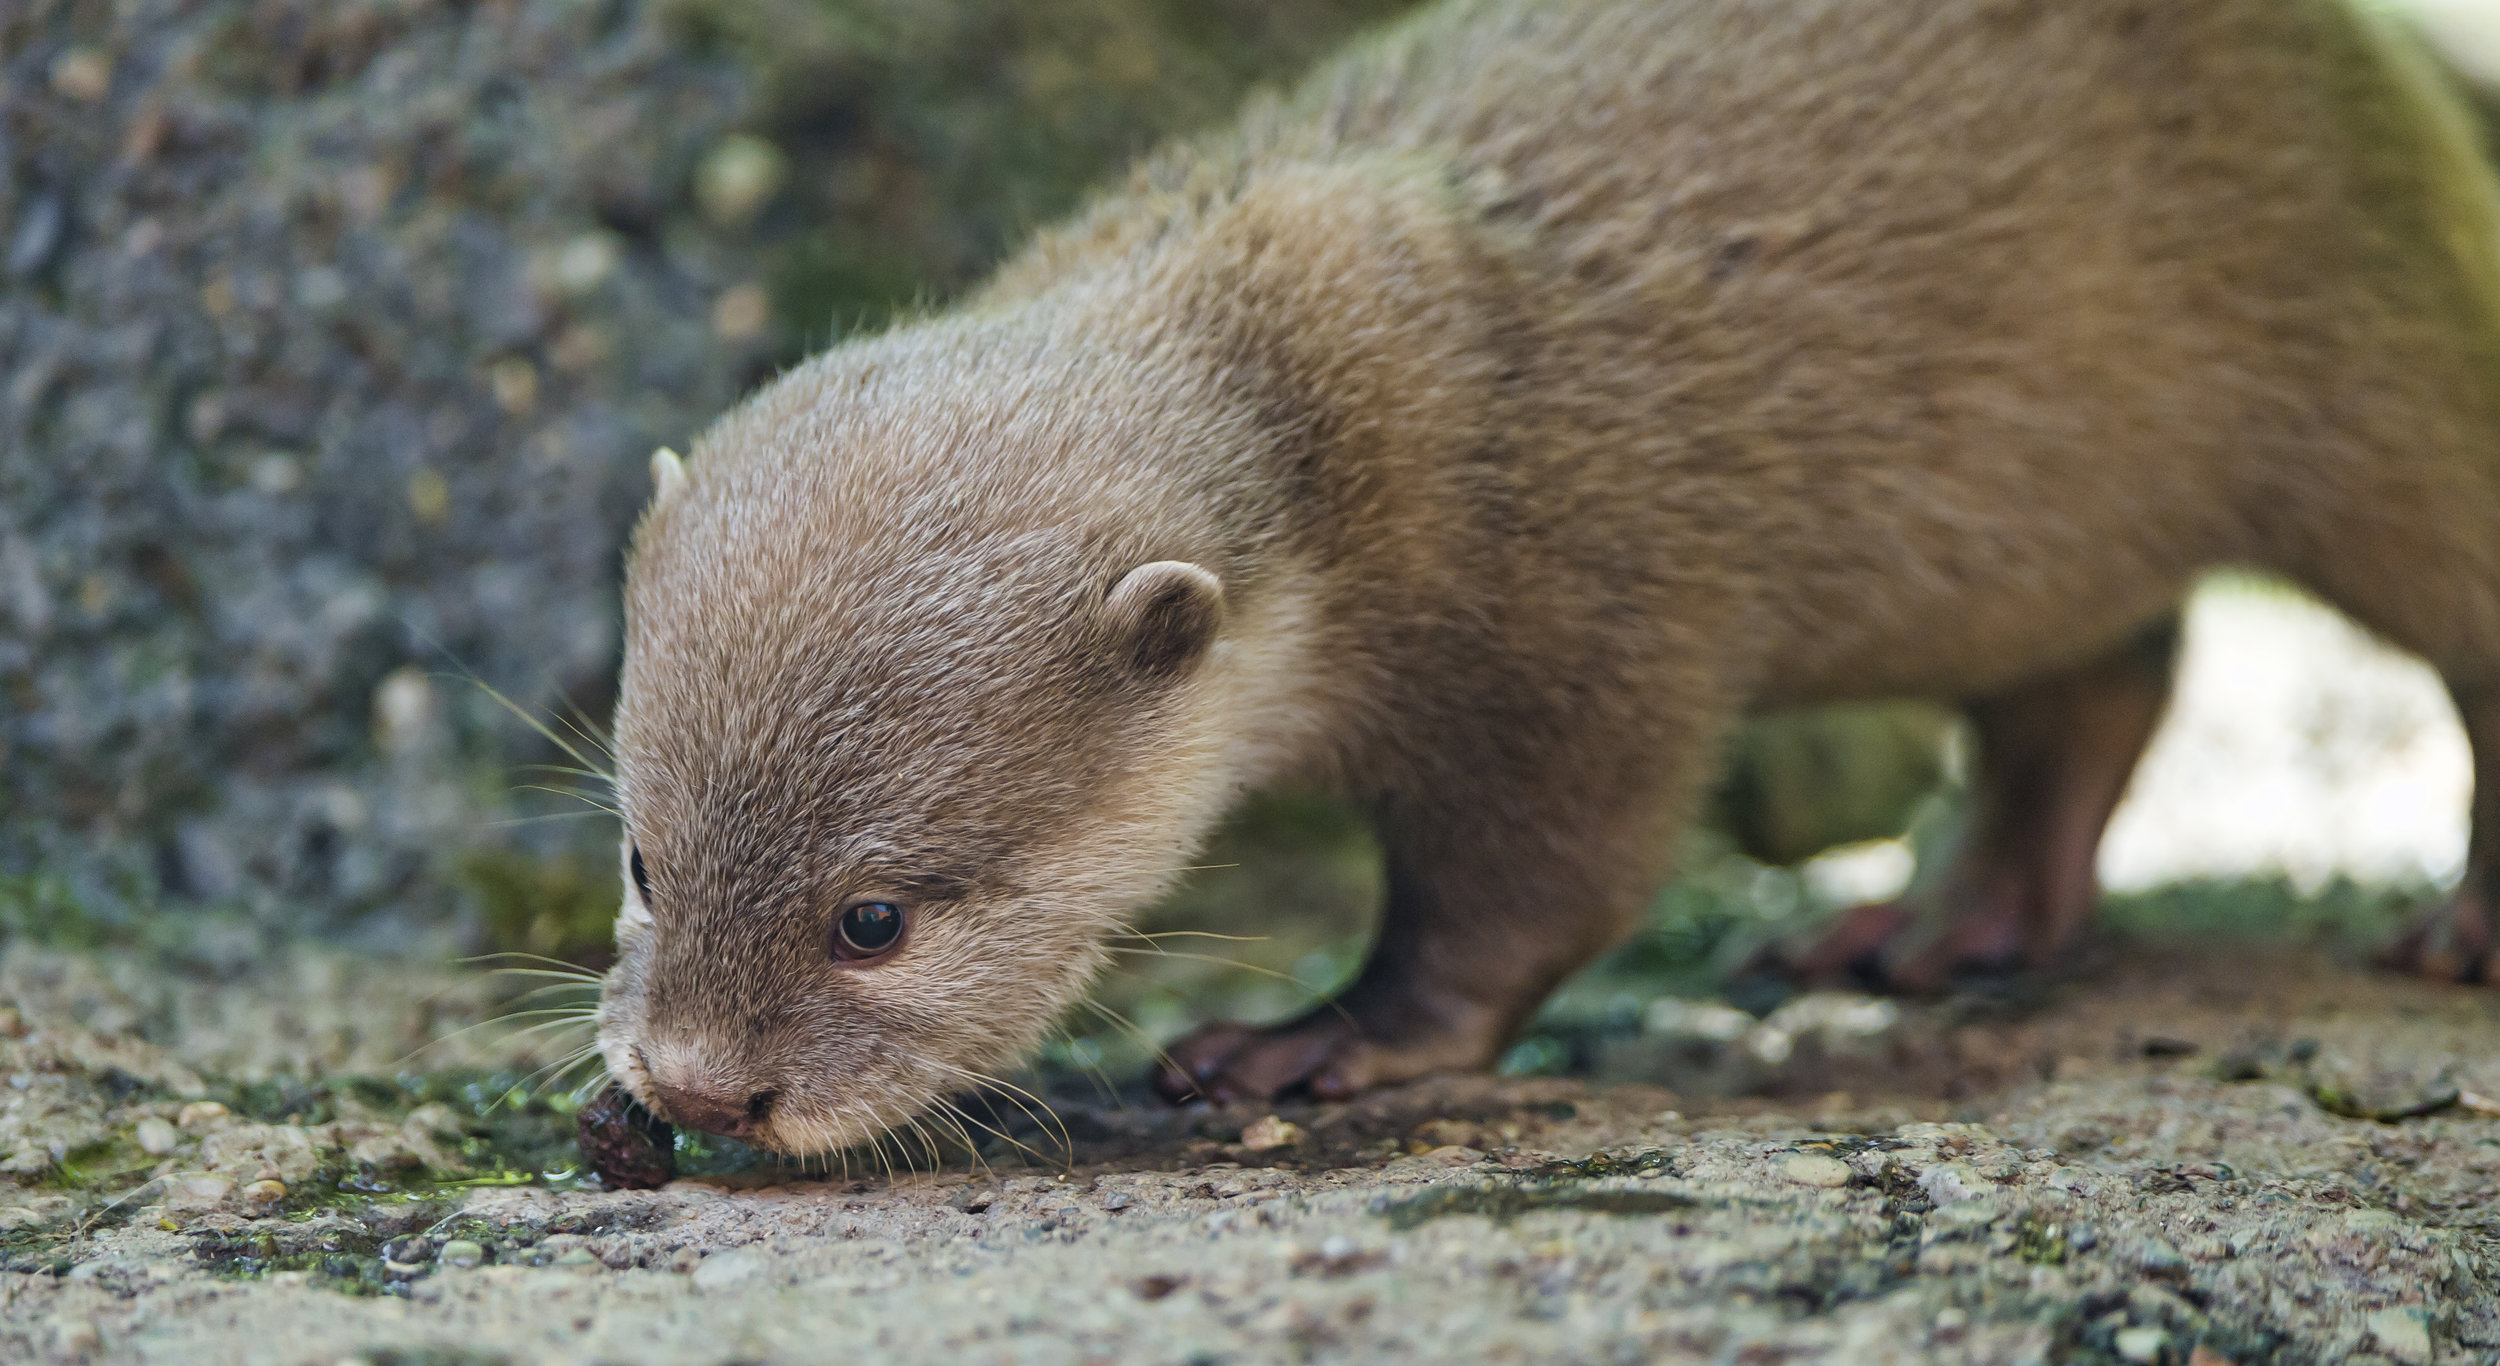 Otter Pup Sniffs at Something on the Ground